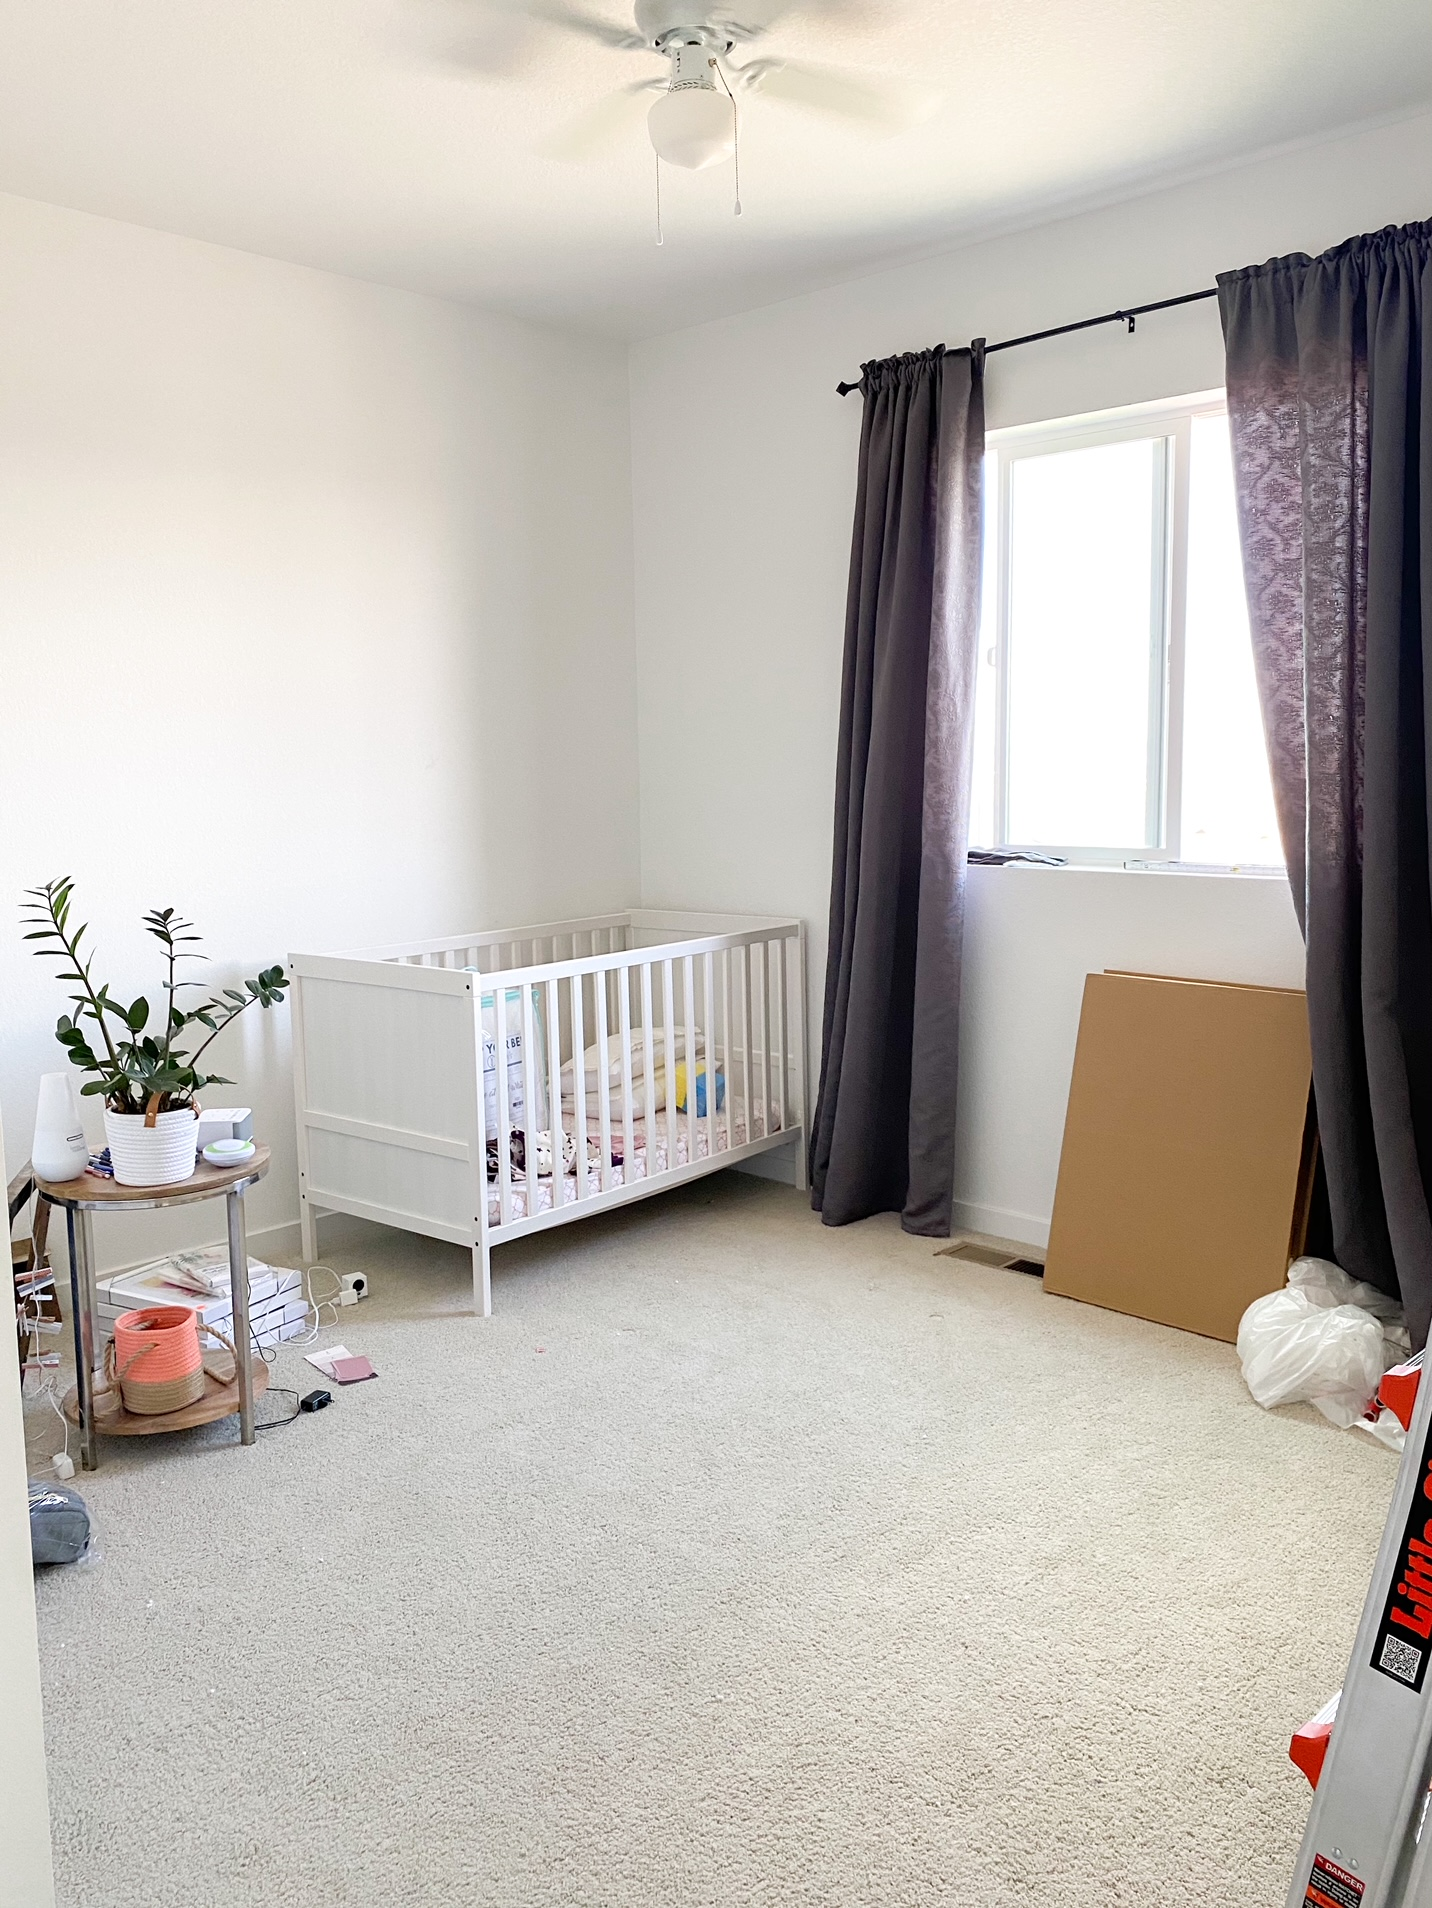 Room with white crib and gray curtains